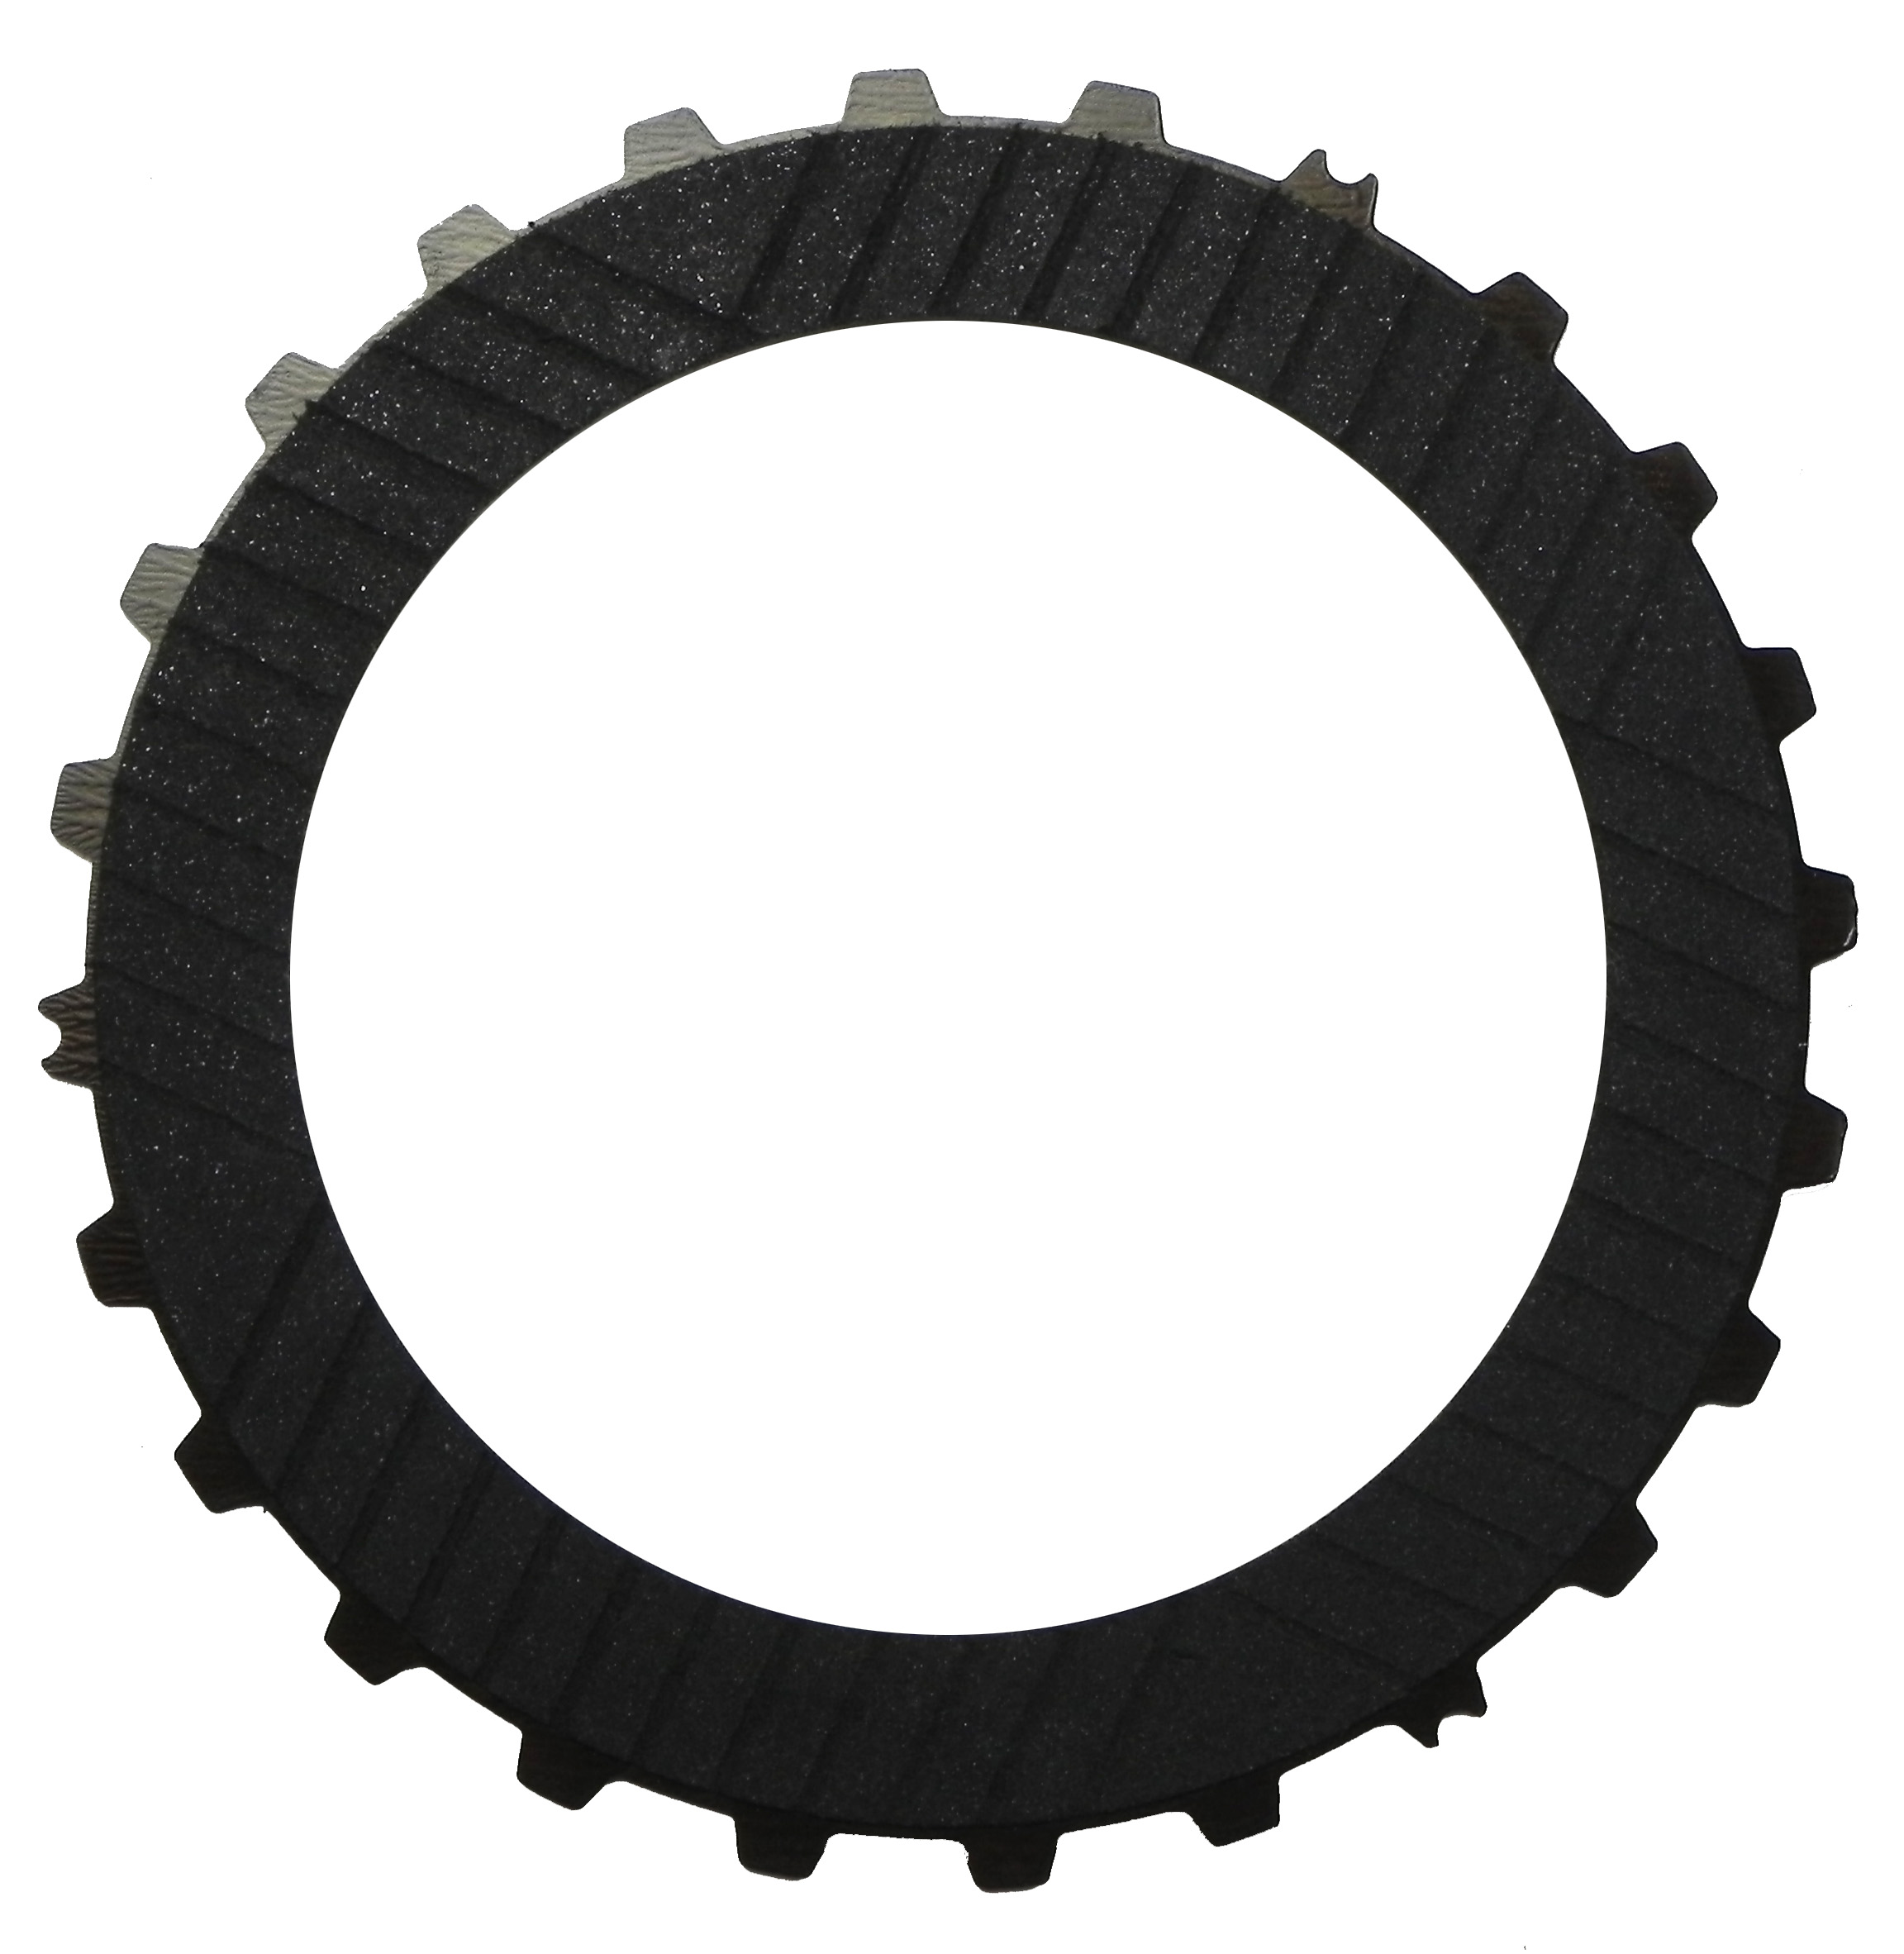 R572635 | 2005-ON Friction Clutch Plate High Energy K3 Clutch Single Sided, OD Spline High Energy